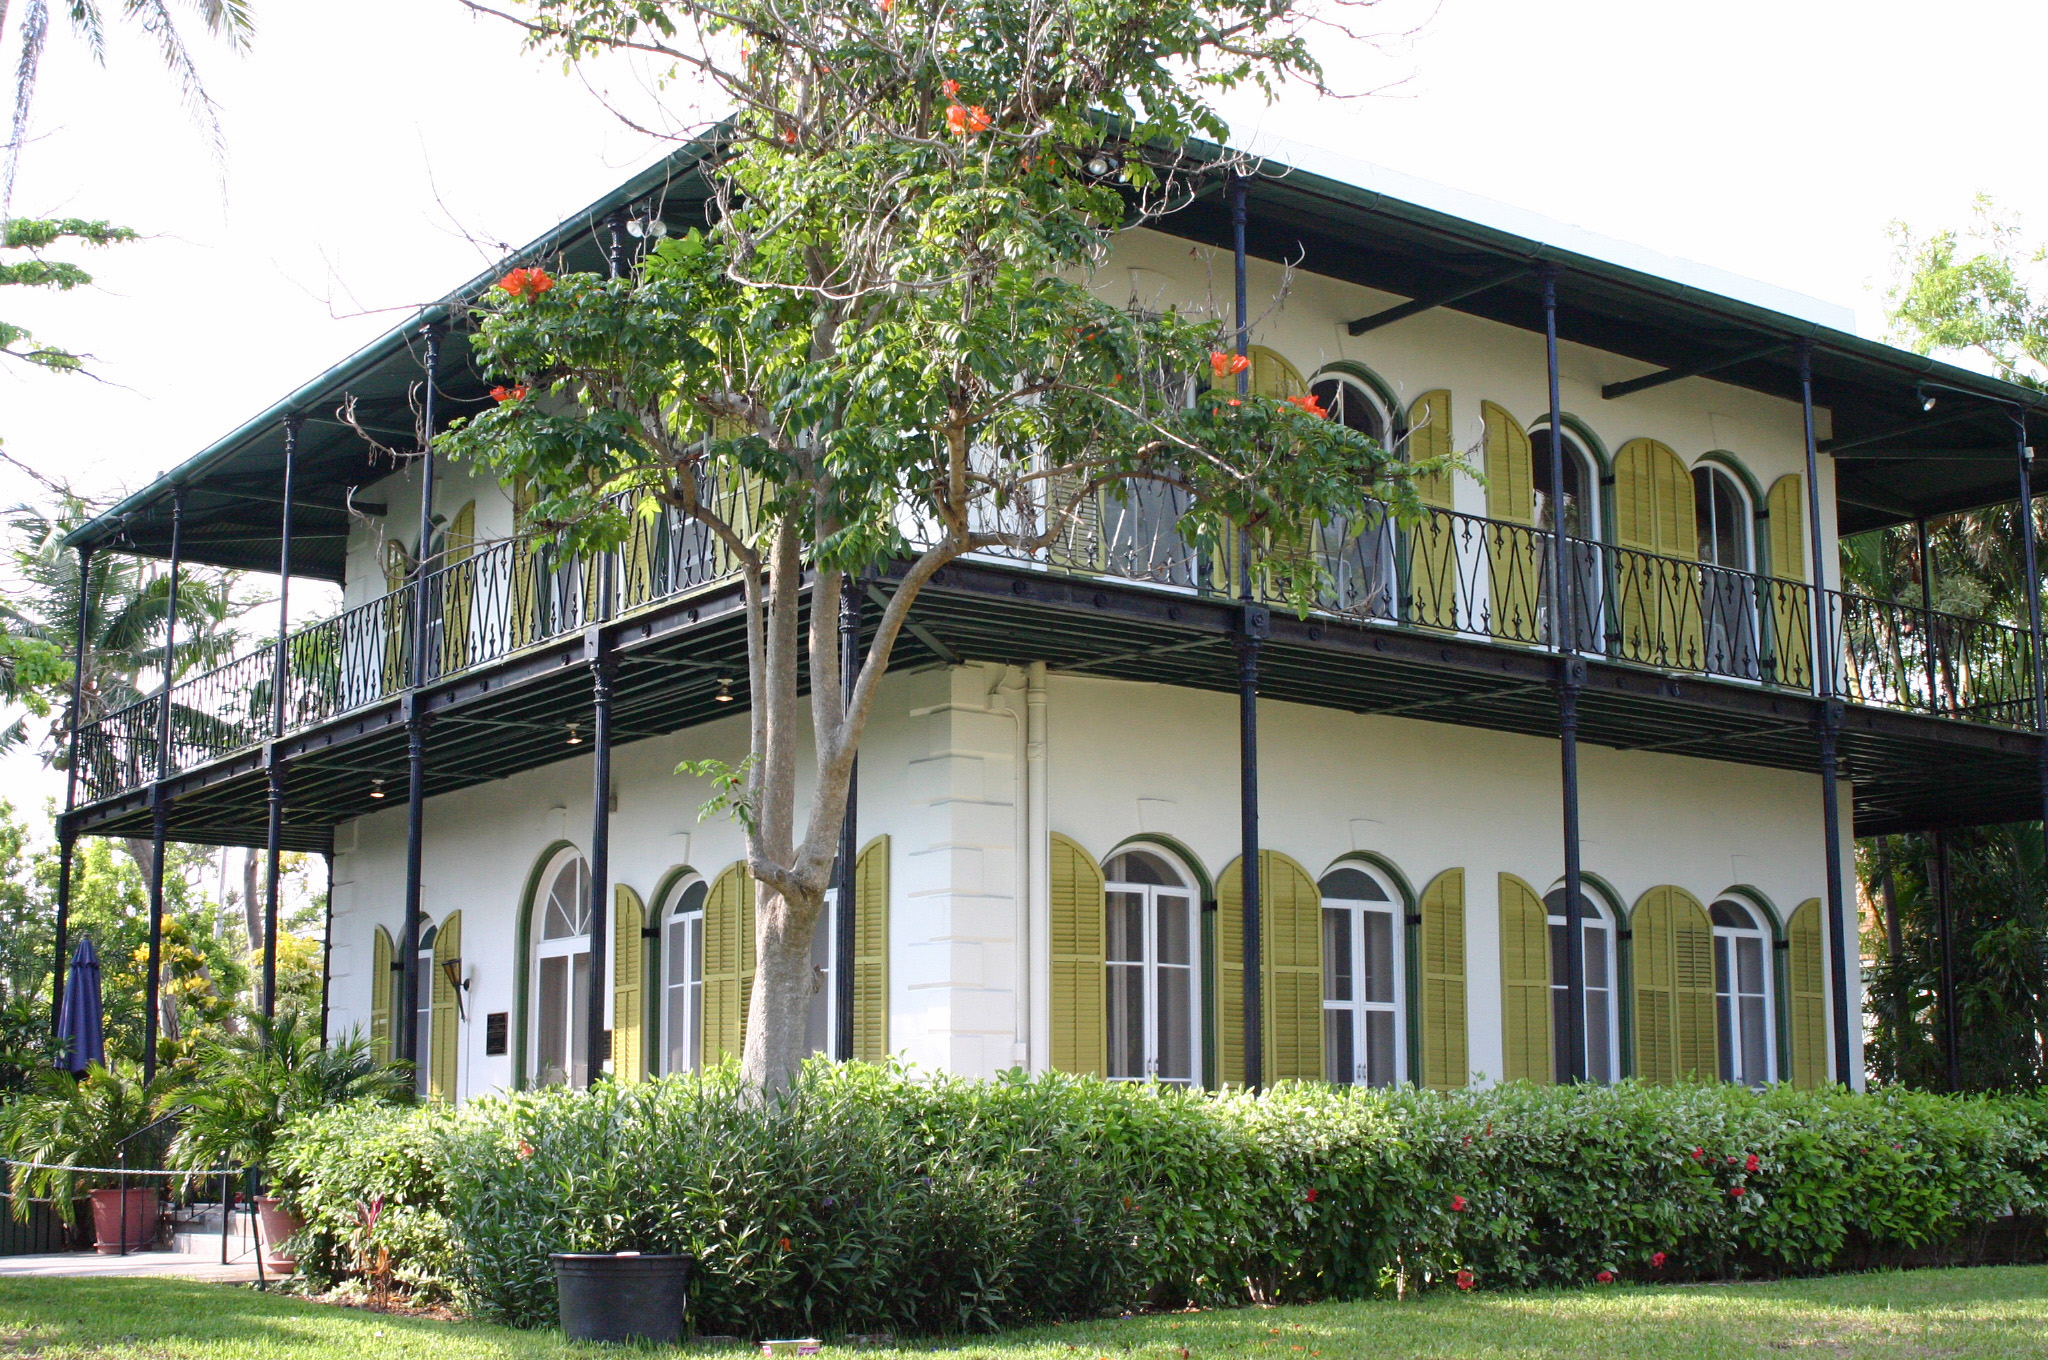 Tremendous Ernest Hemingway House Wikipedia Download Free Architecture Designs Sospemadebymaigaardcom